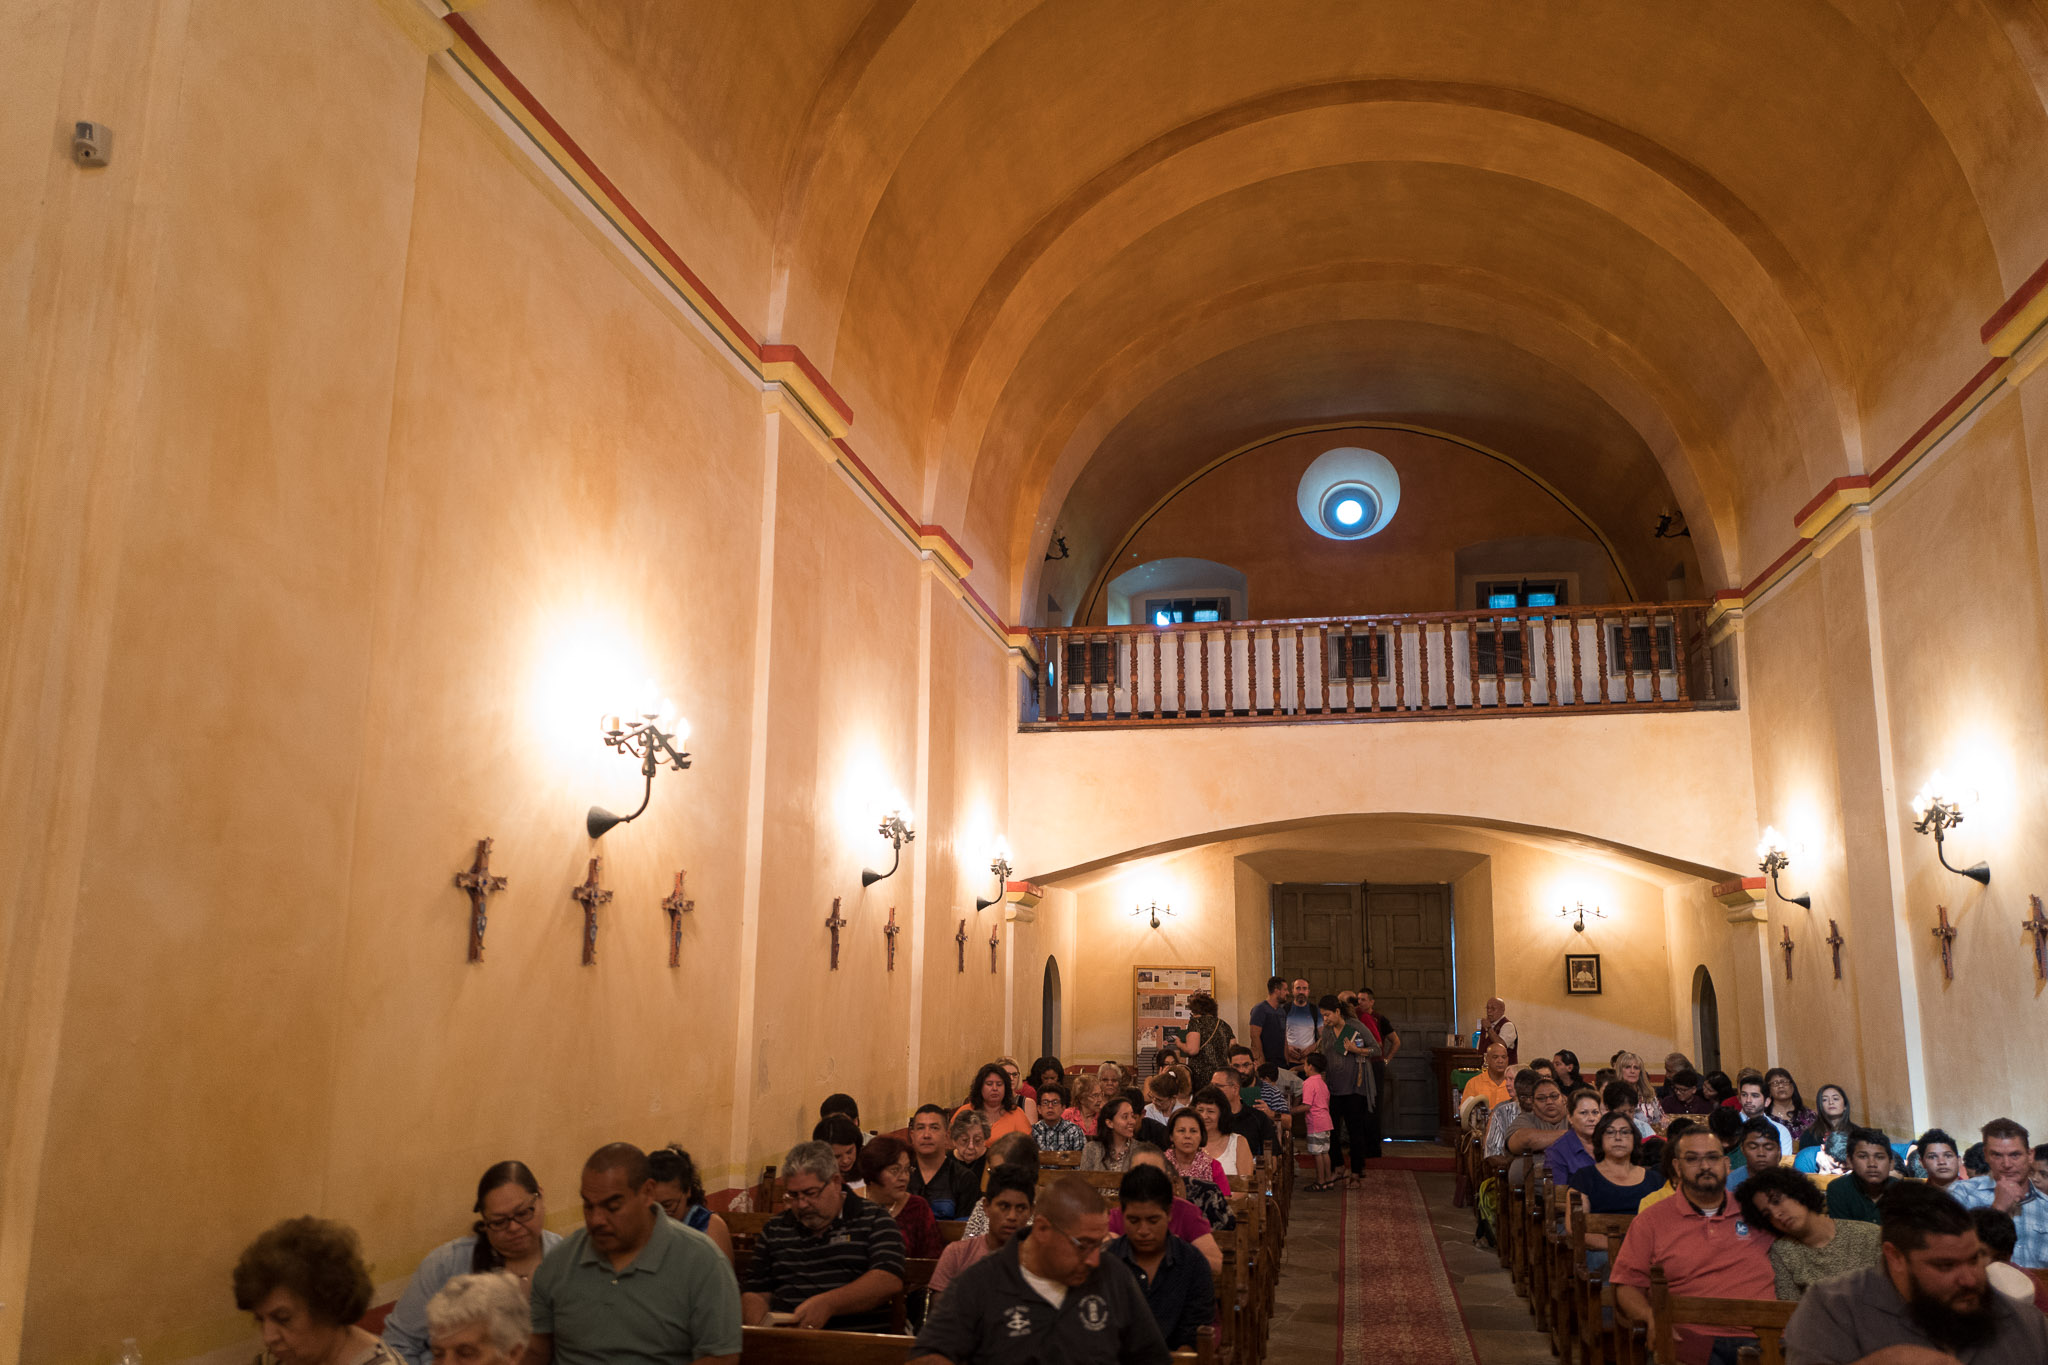 A full mass at Mission Concepción on Sunday September 11, 2016. Photo by Scott Ball.